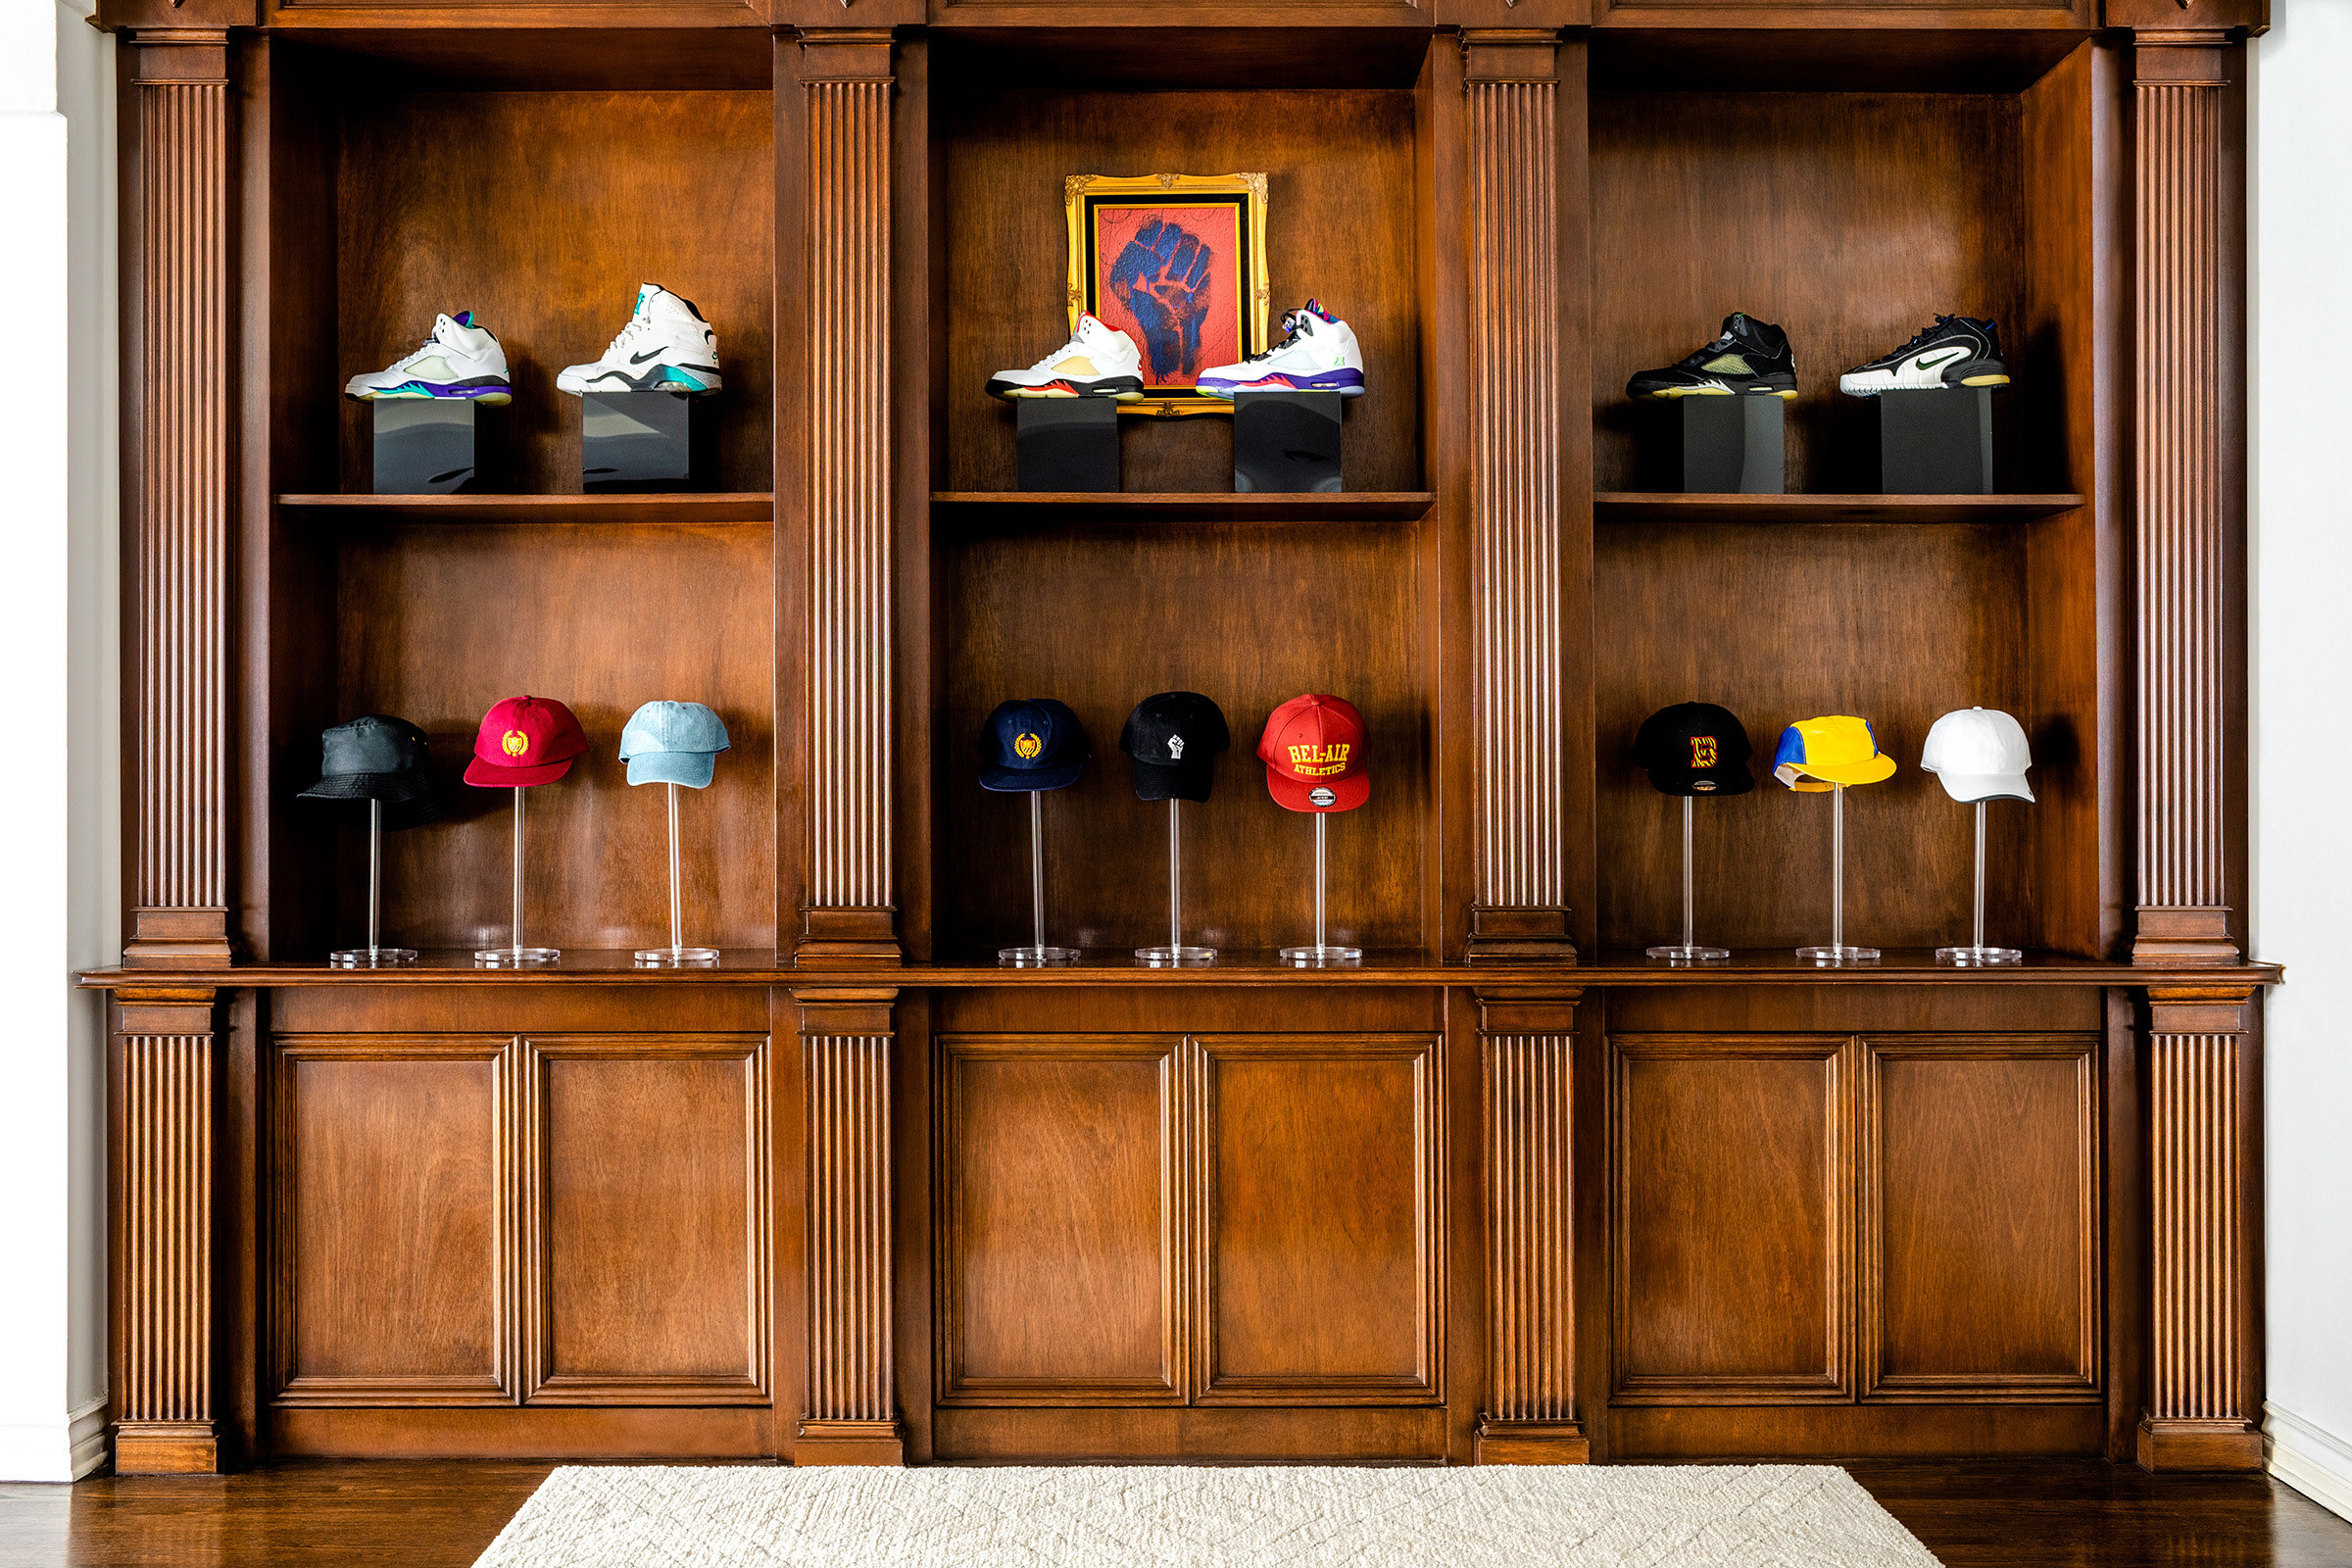 Dark wooden ornate shelving holds fancy sneakers and hats on pedestals